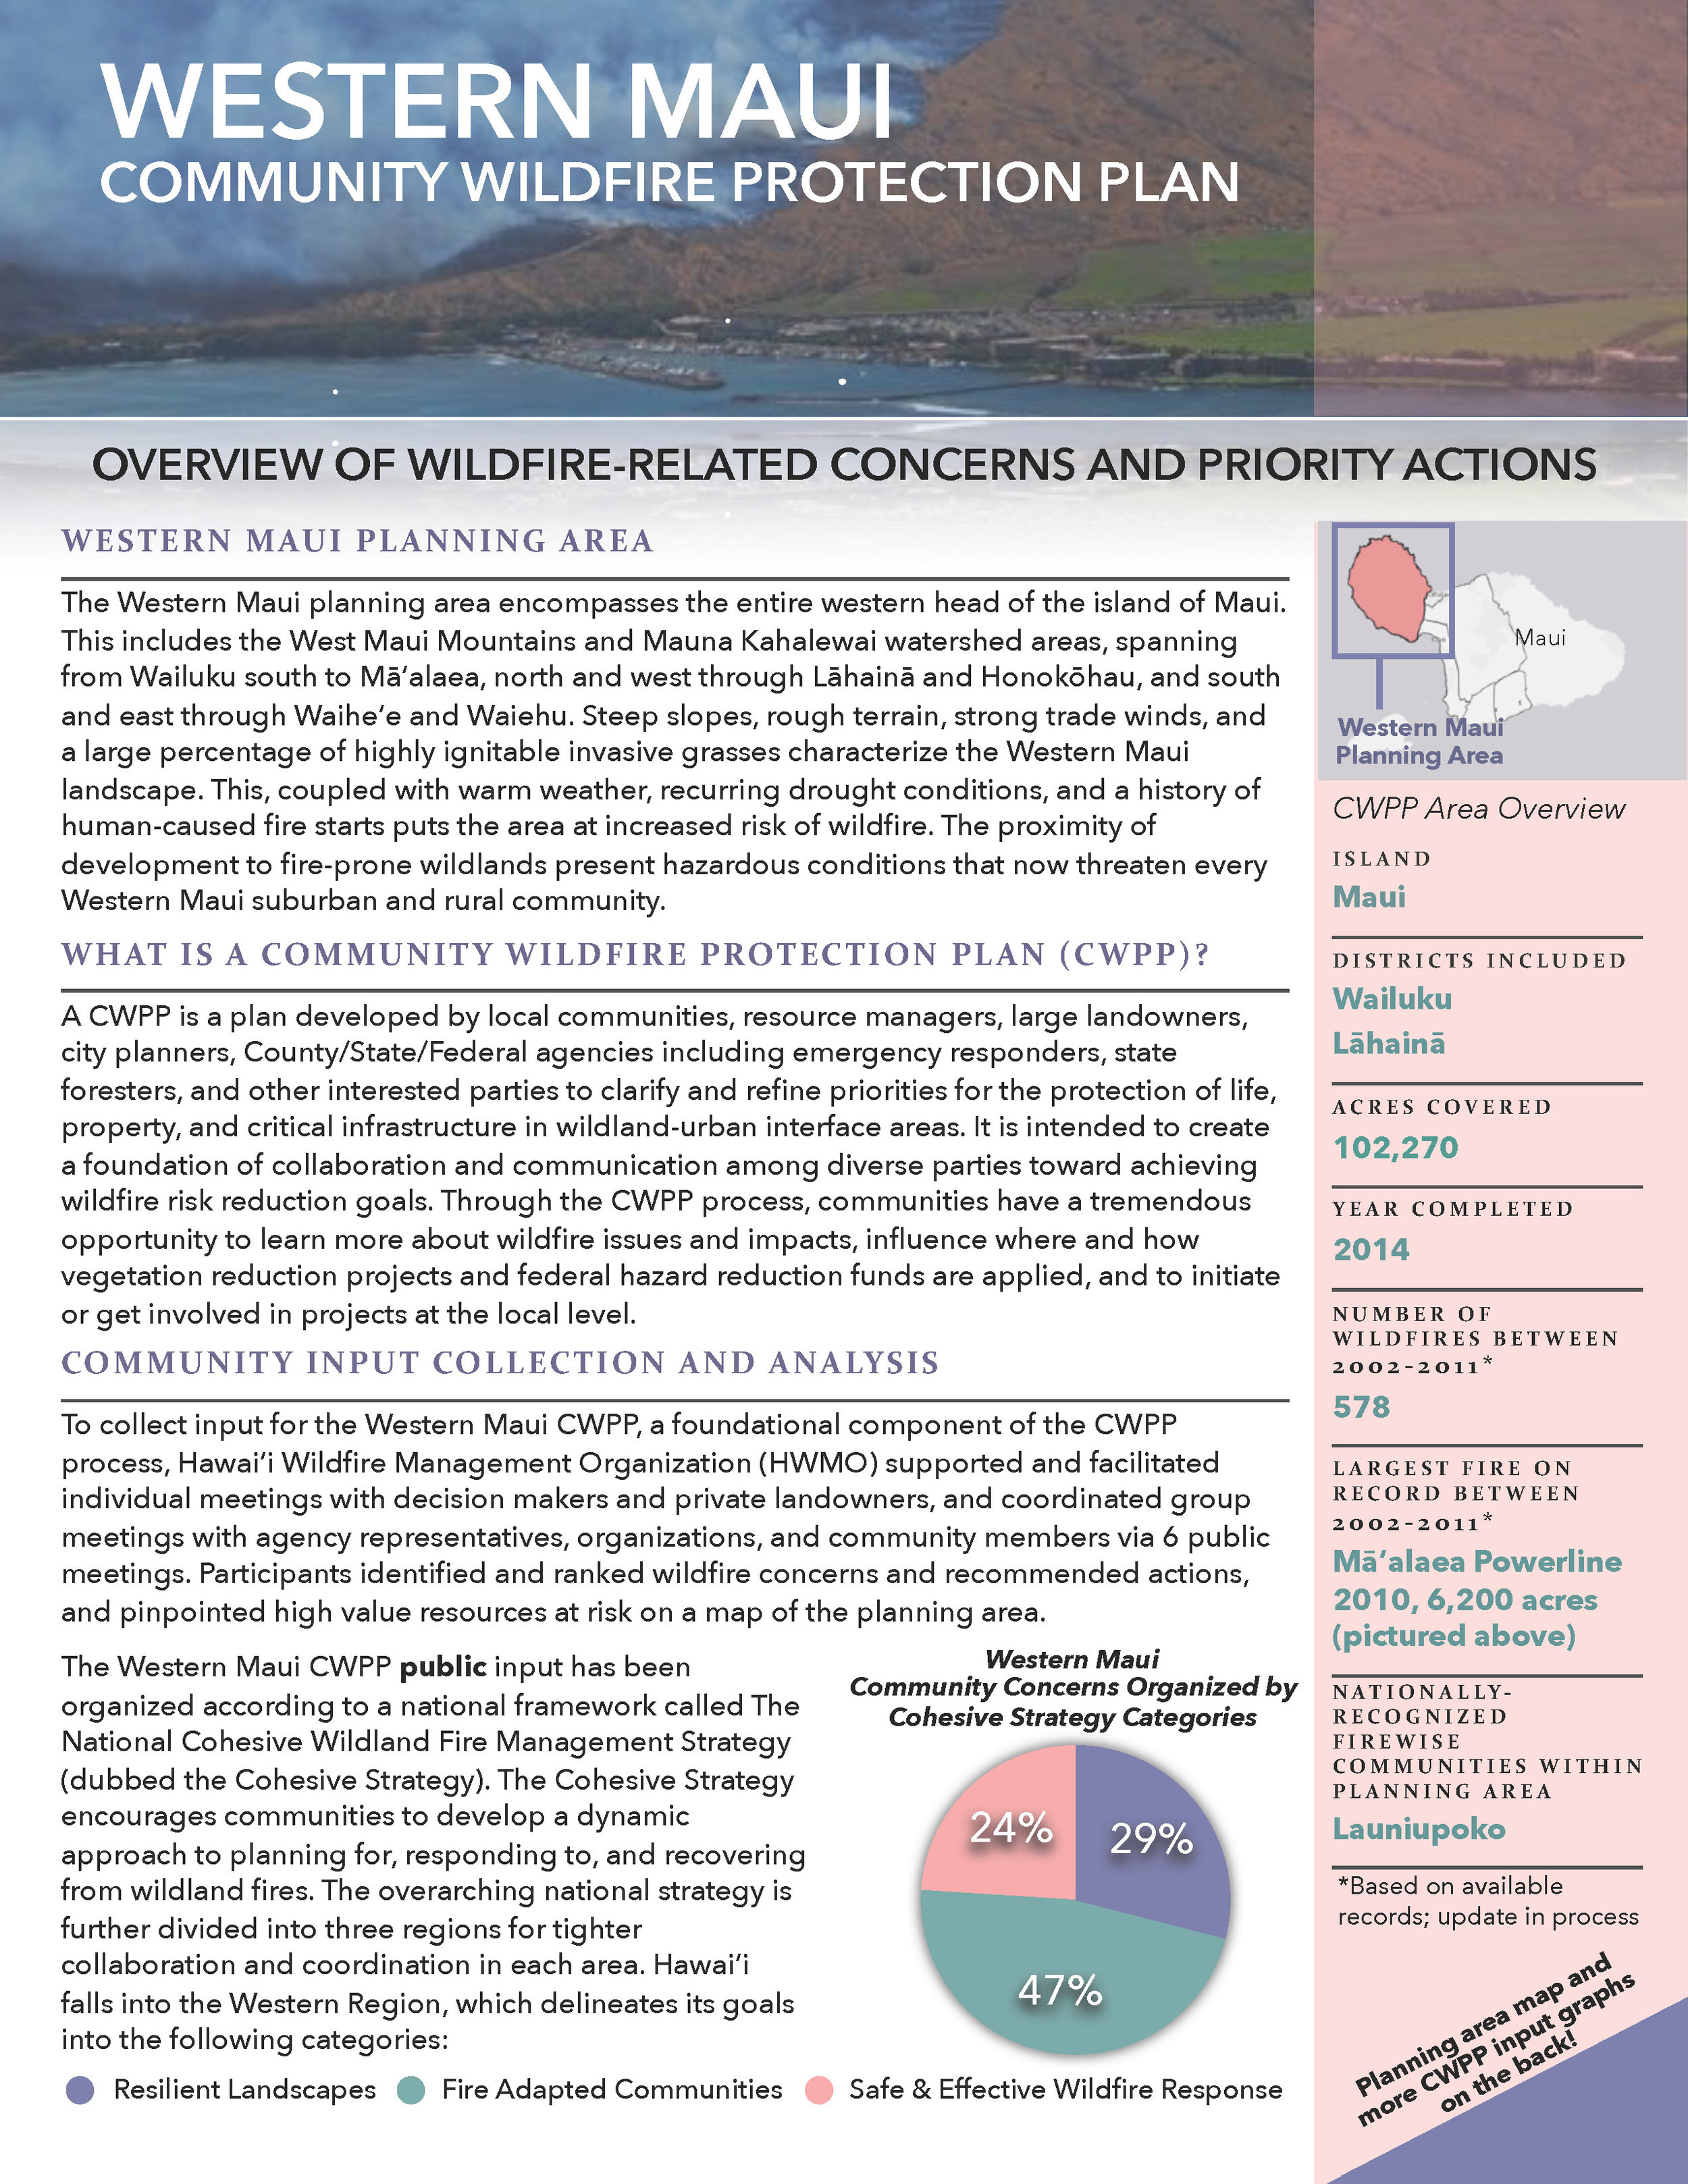 2018_4_18_CWPP Concerns and Priorities Overview_Western Maui_FINAL_HWMO_Page_1.jpg